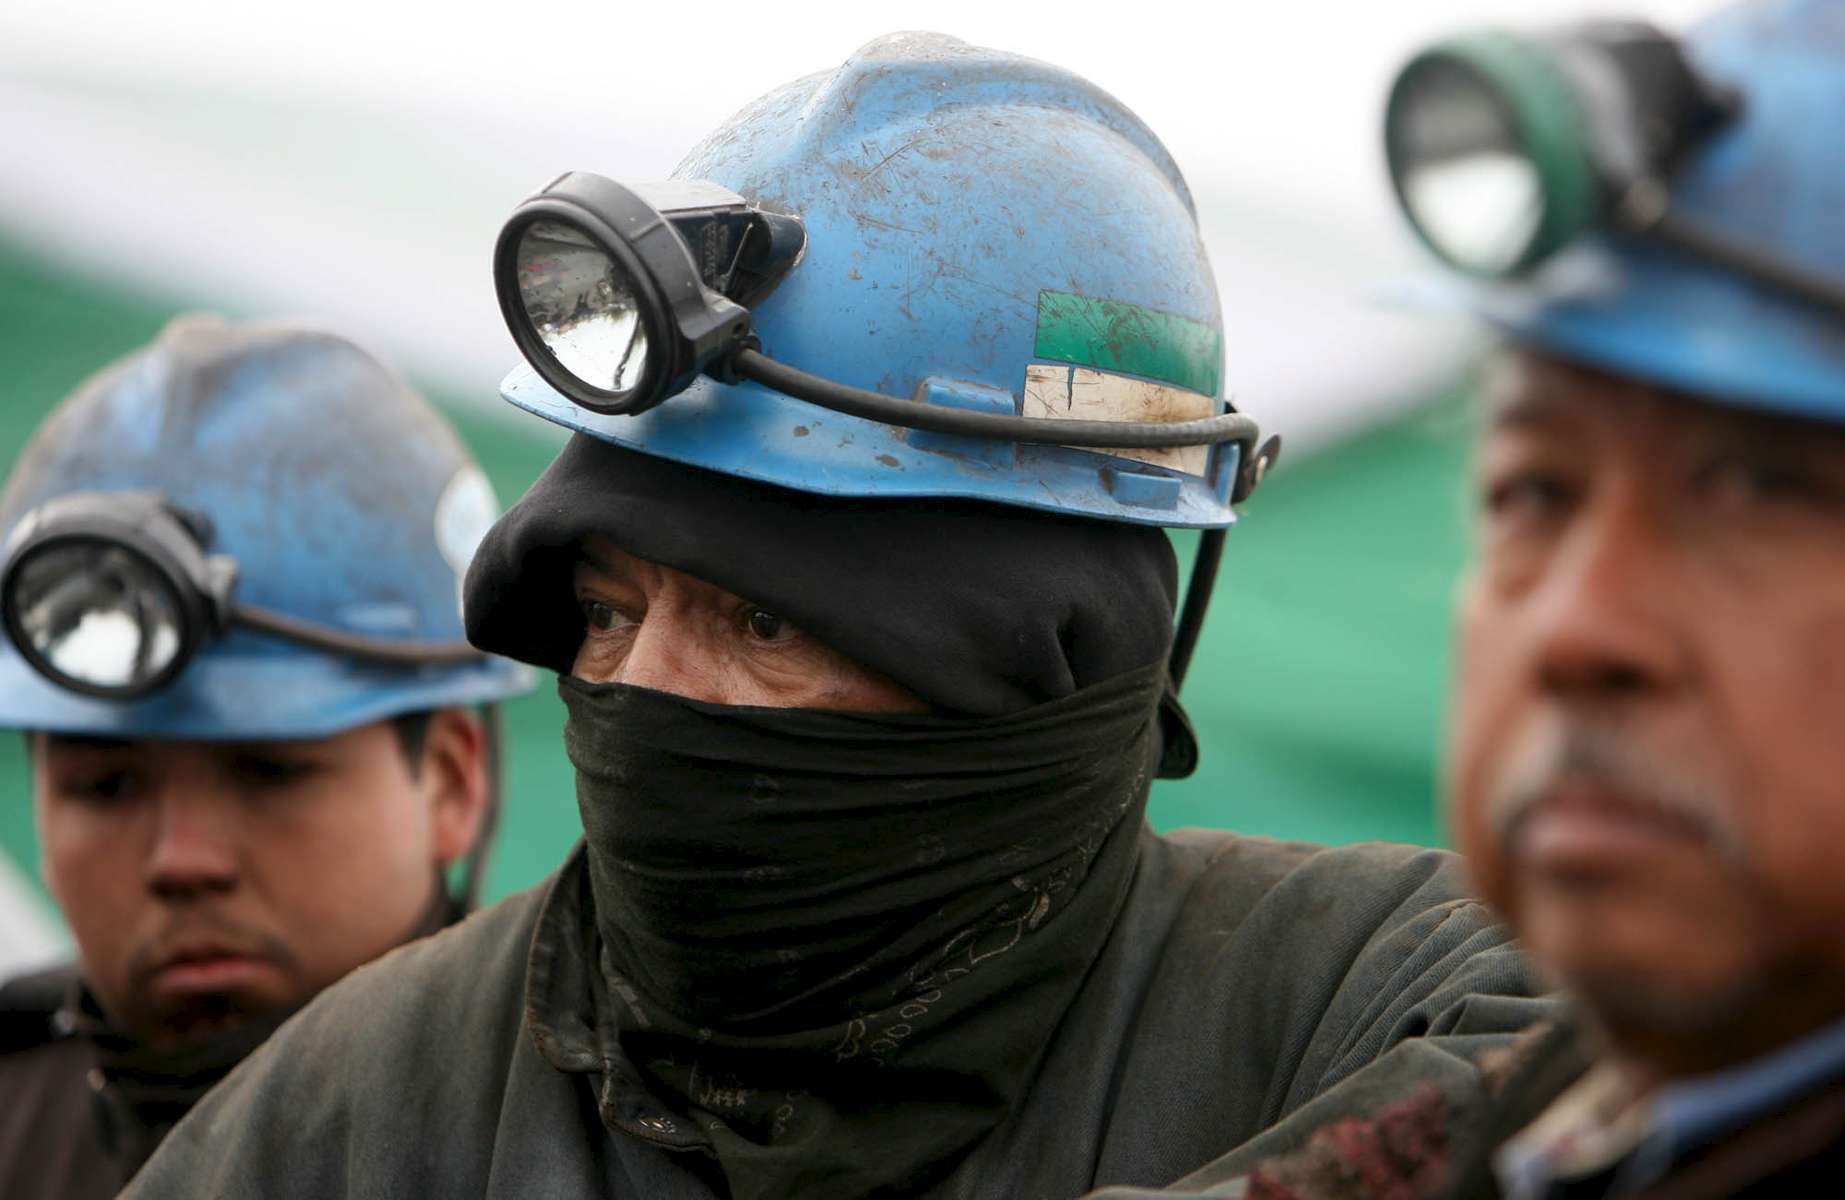 Weary miners, from left, Luis Enrique Beltrán, Rolando Sanchez, and Nicanor Limón, wait to start their shifts in rescue efforts in front of the Pasta de Conchos coal mine in San Juan de Sabinas in the Mexican state of Coahuila Tuesday. Family members waited outside the Pasta de Conchos coal mine Tuesday. In the Early morning on Sunday 65 miners were trapped 163 meters below ground after an explosion.Sharón Steinmann / Houston Chronicle